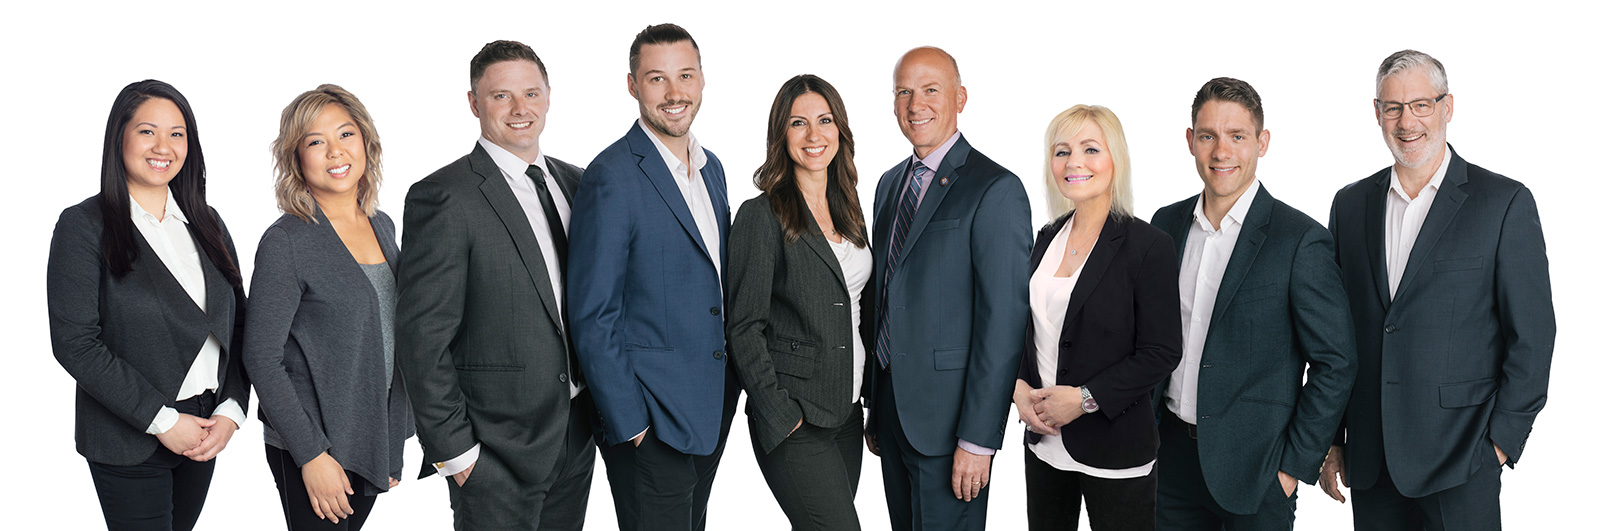 Elevation Team of Agents